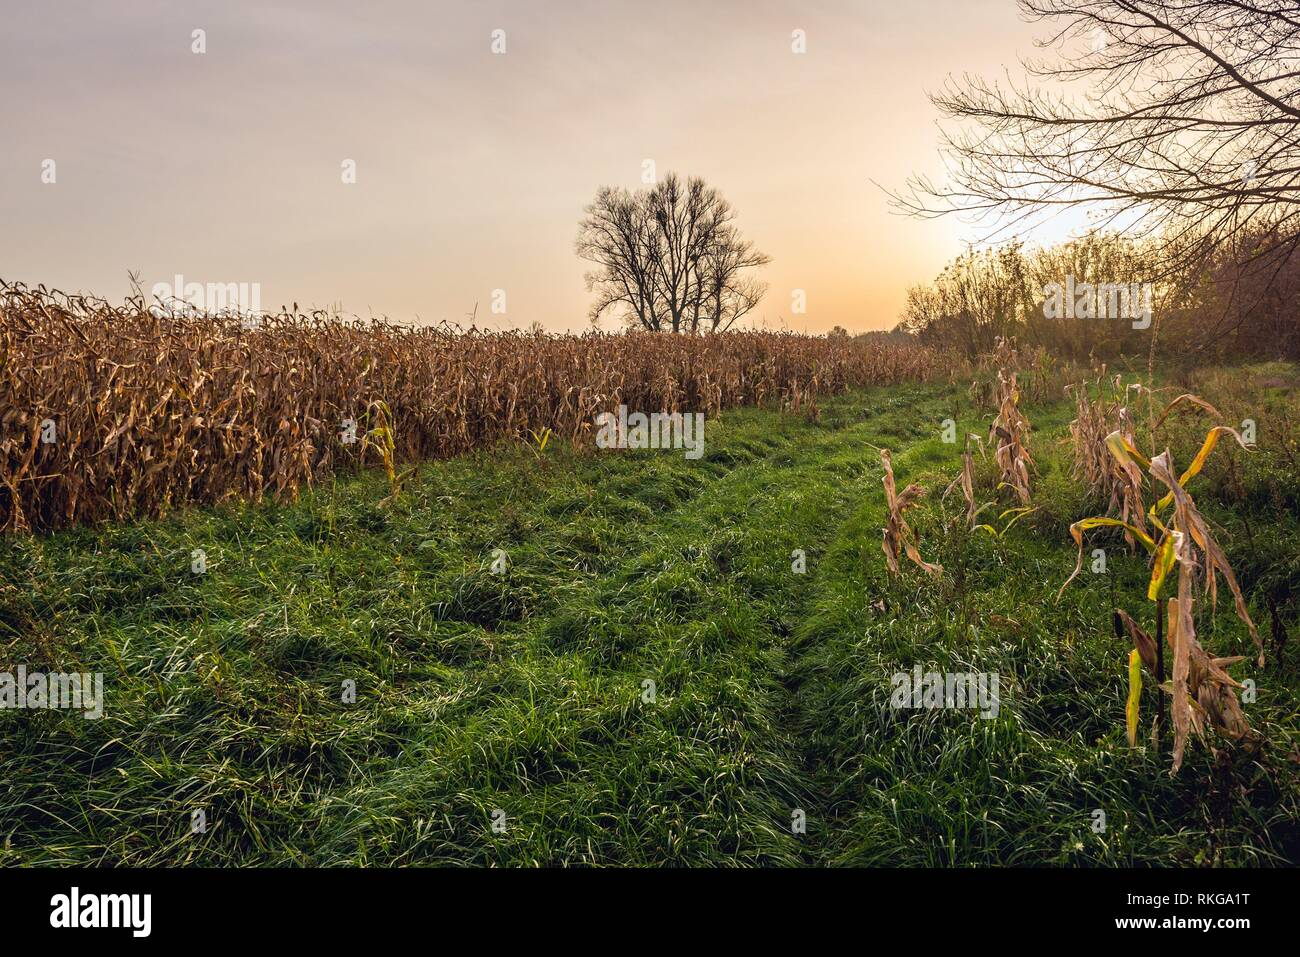 Corn fields in Witkowice village, Sochaczew County in Masovian Voivodeship of Poland. - Stock Image